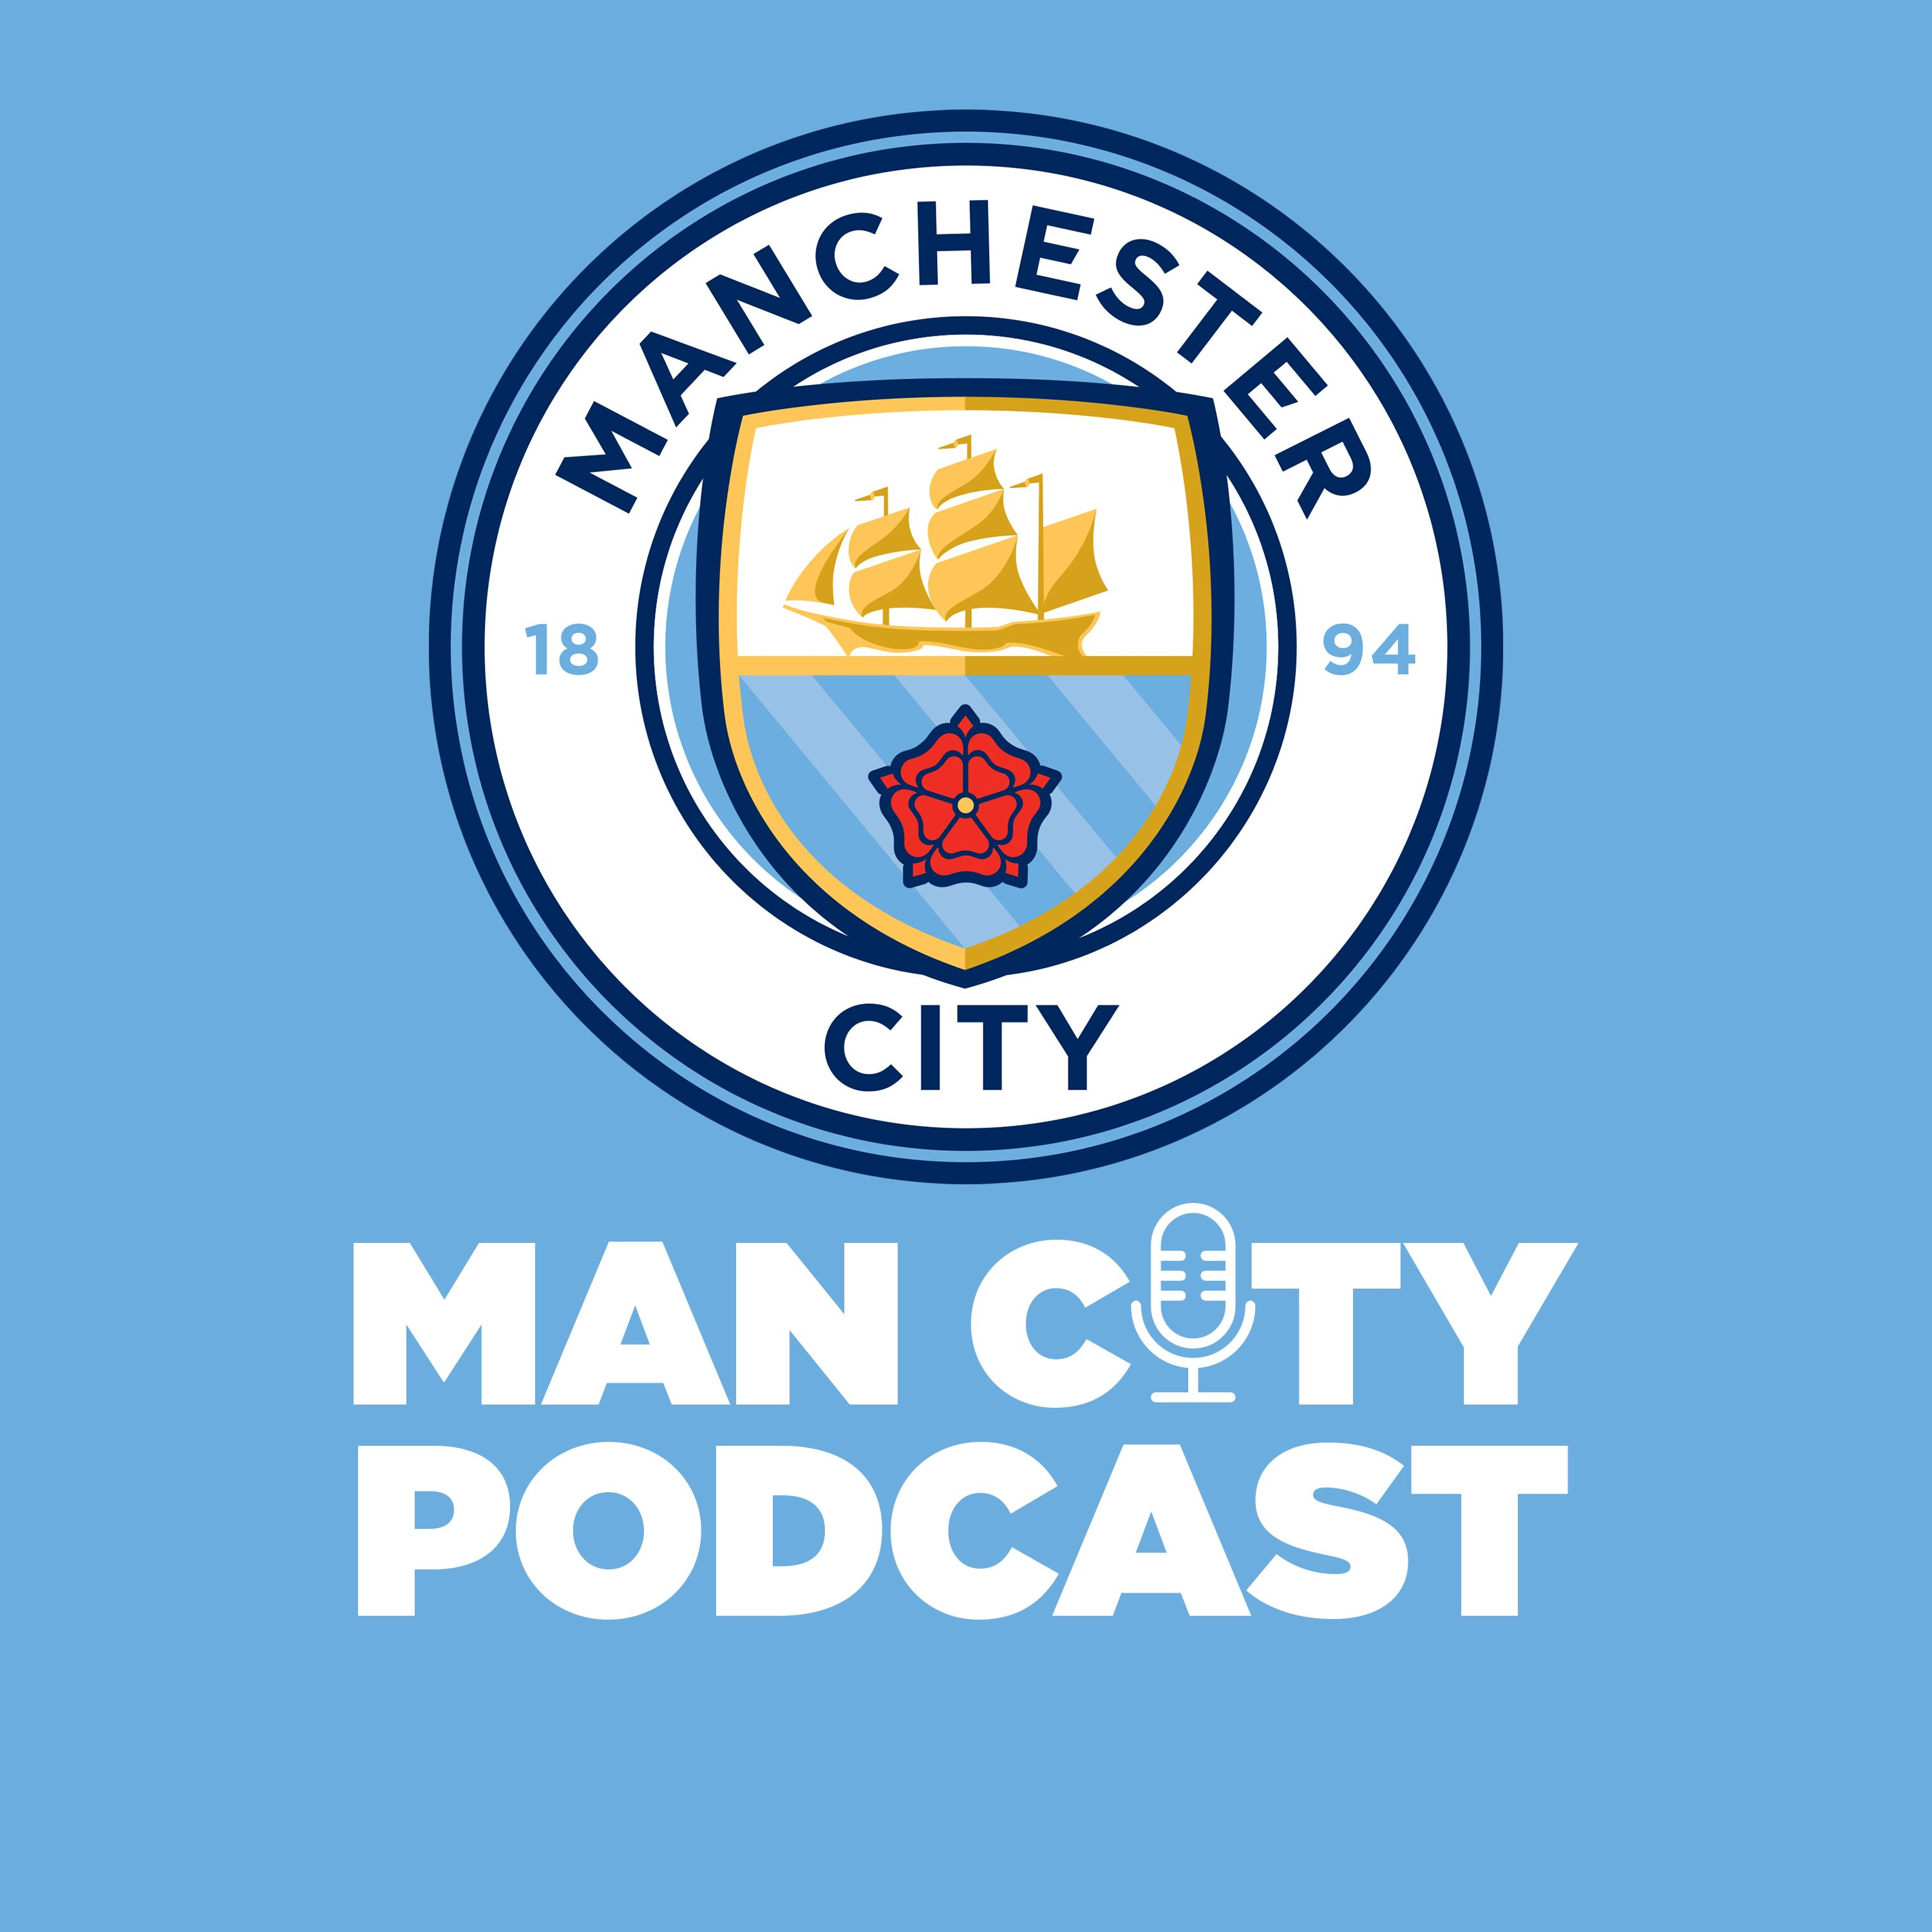 Paul & Joanne Lake | The Official Man City Podcast